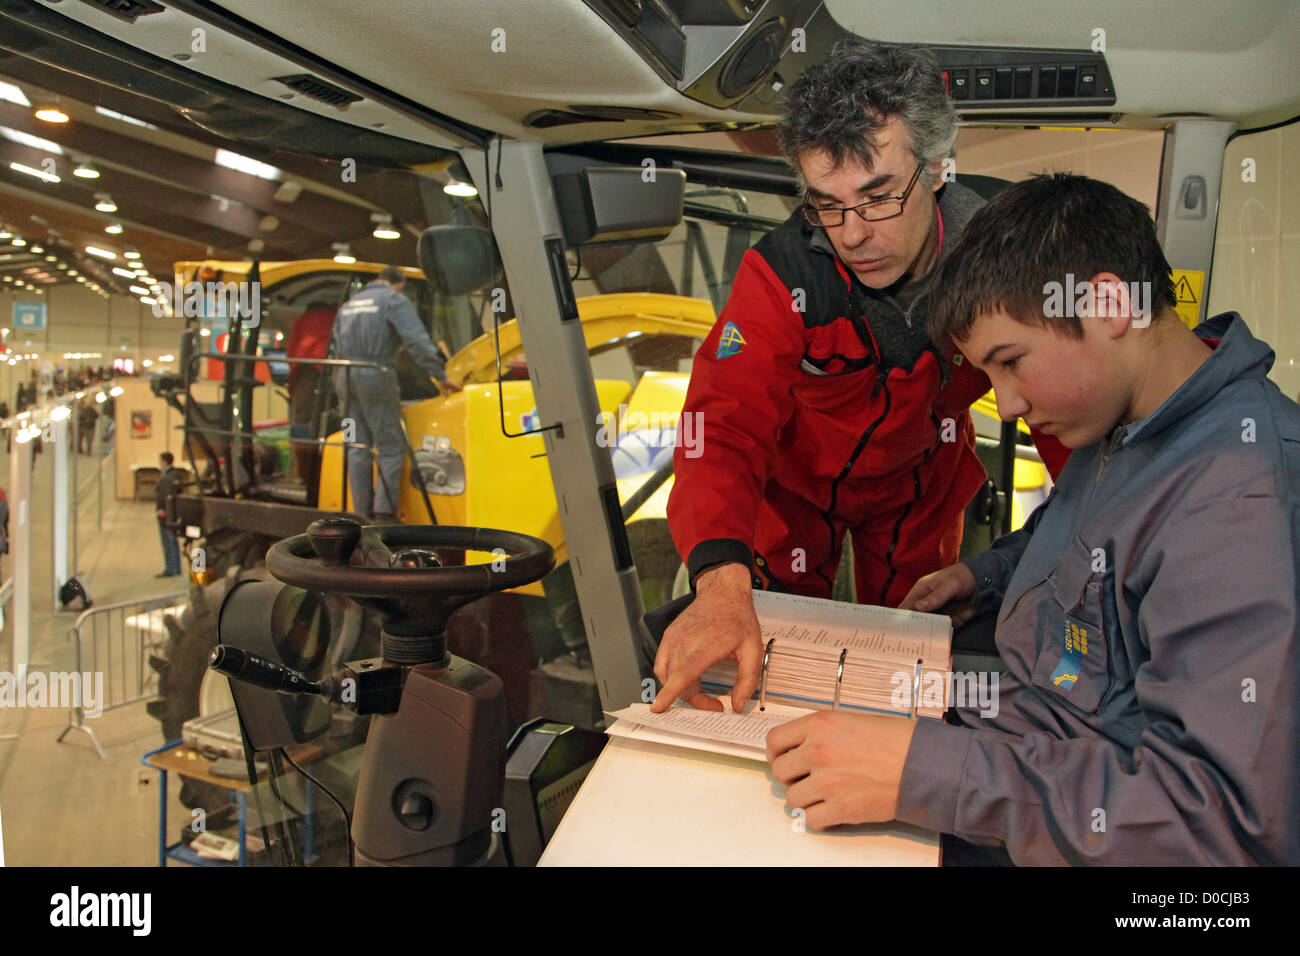 TEACHER AND STUDENT ON A FARMING MECHANICS TEST 42ND OLYMPIADES DES METIERS IN BRITTANY RENNES FRANCE - Stock Image